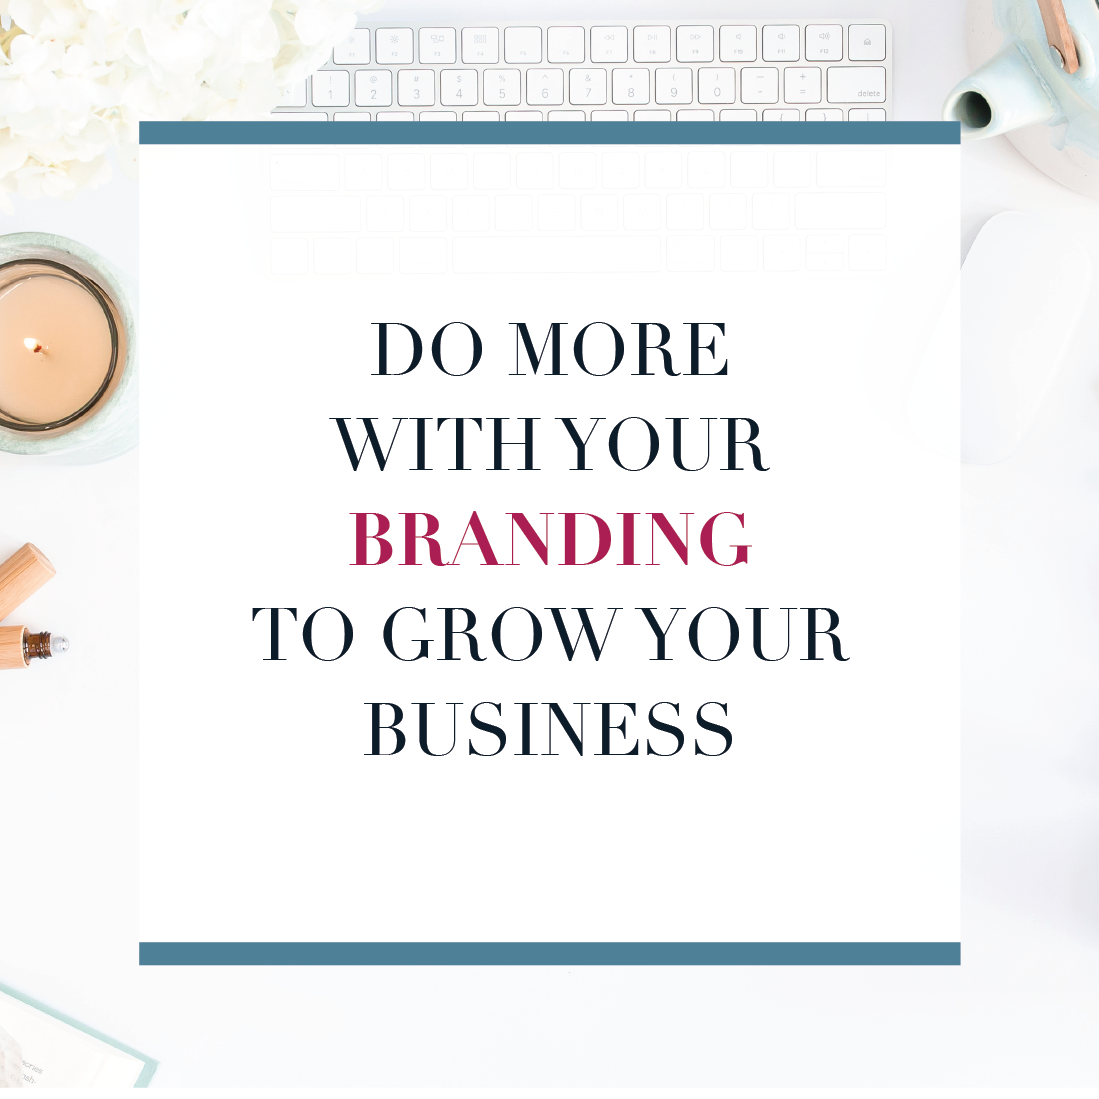 Do More With Your Branding – 6 Places to Use Your Brand Elements